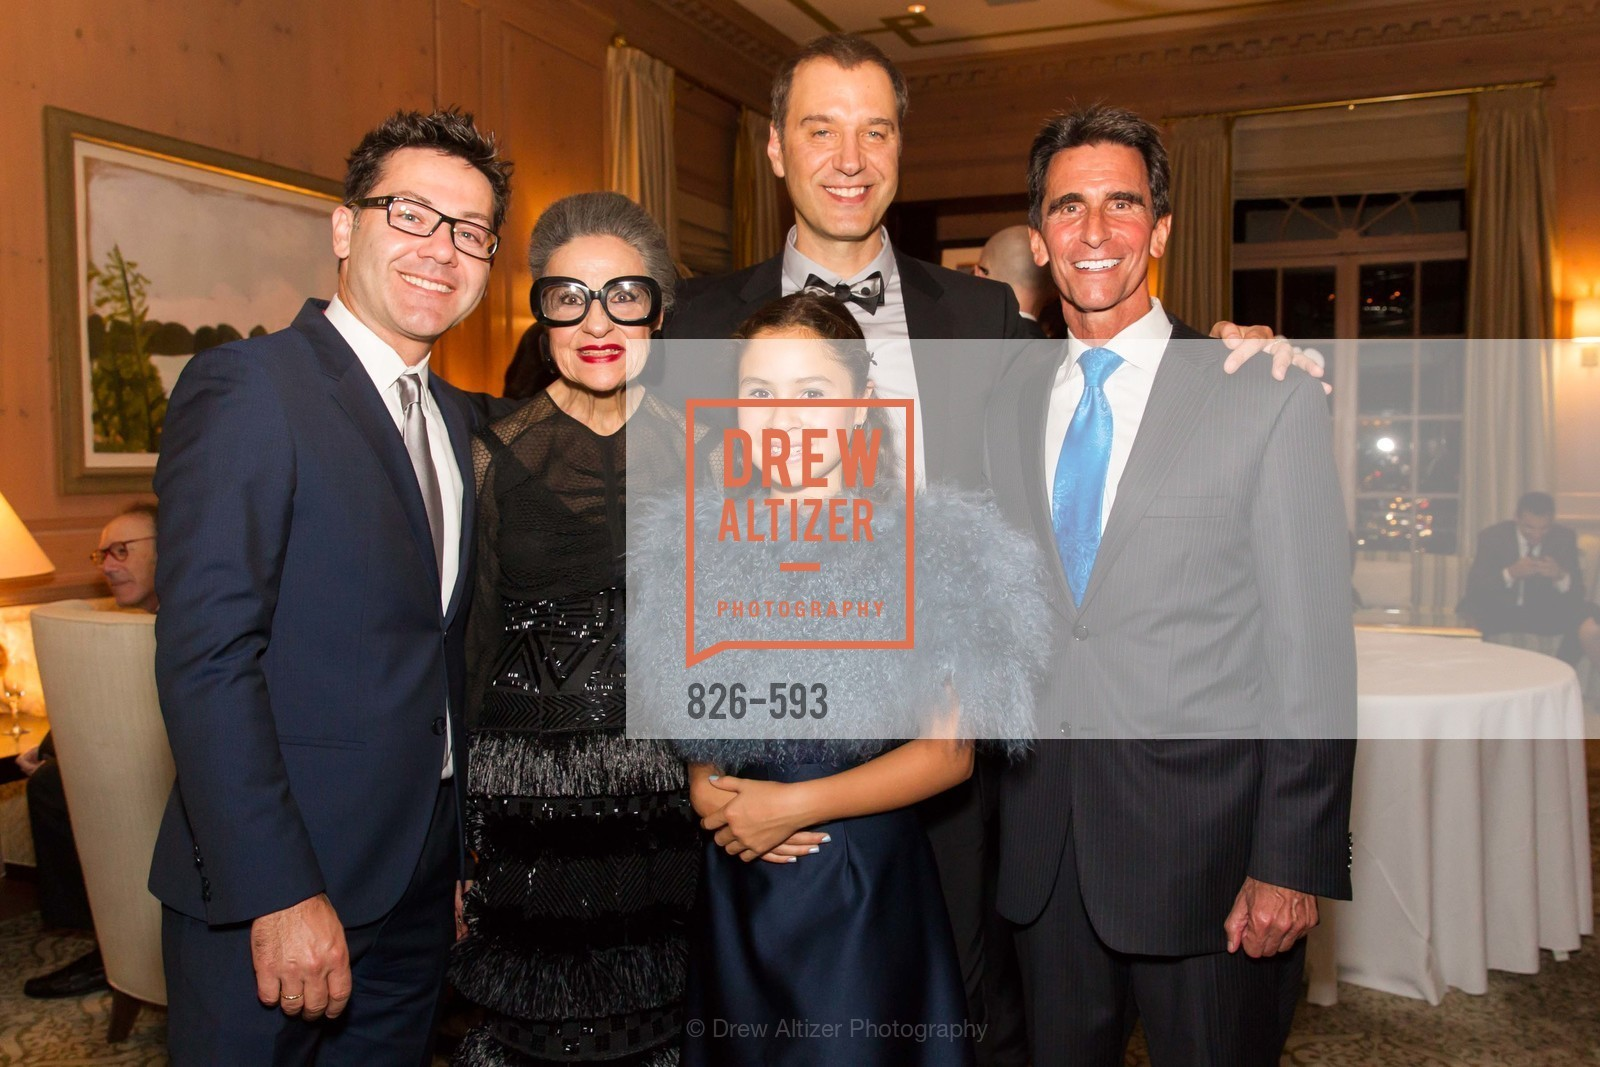 Sonny Vukic, Joy Venturini Bianchi, Frank Silletti, Eva Vukic, Mark Leno, COUTURE FOR A CAUSE, US, October 5th, 2014,Drew Altizer, Drew Altizer Photography, full-service agency, private events, San Francisco photographer, photographer california